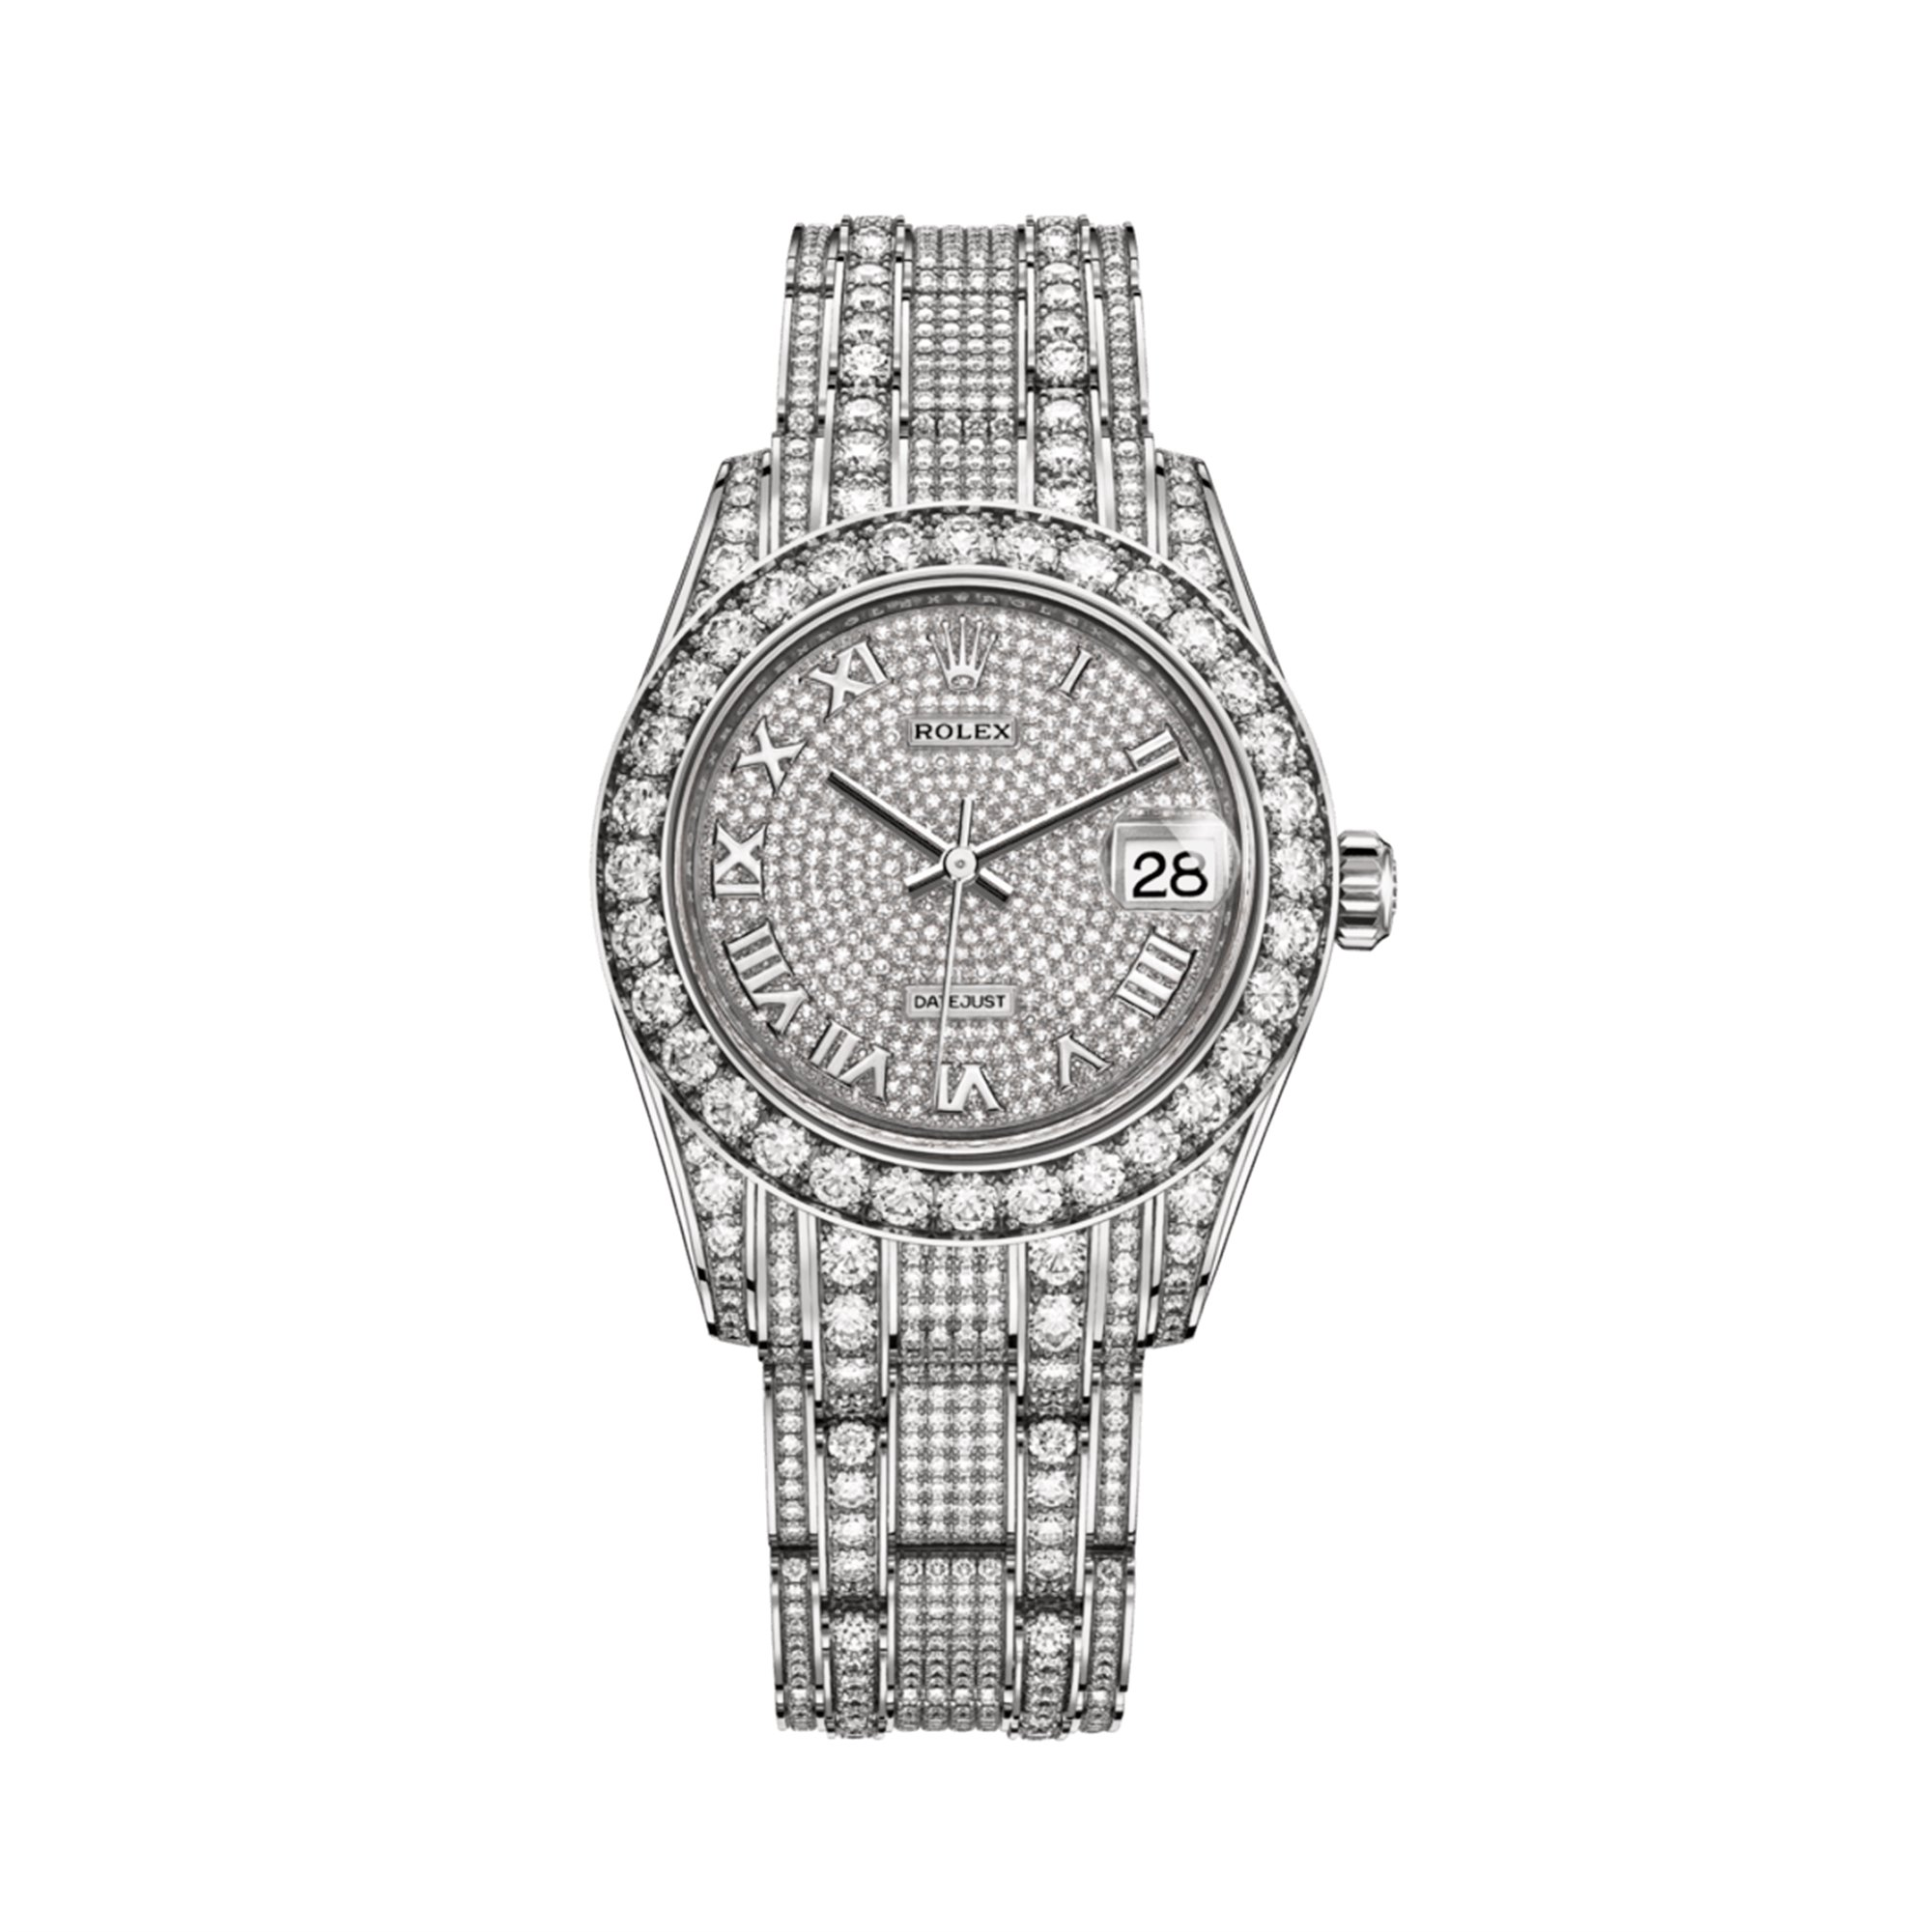 Rolex Datejust Pearlmaster Diamond 18K White Gold 81409RBR-0001